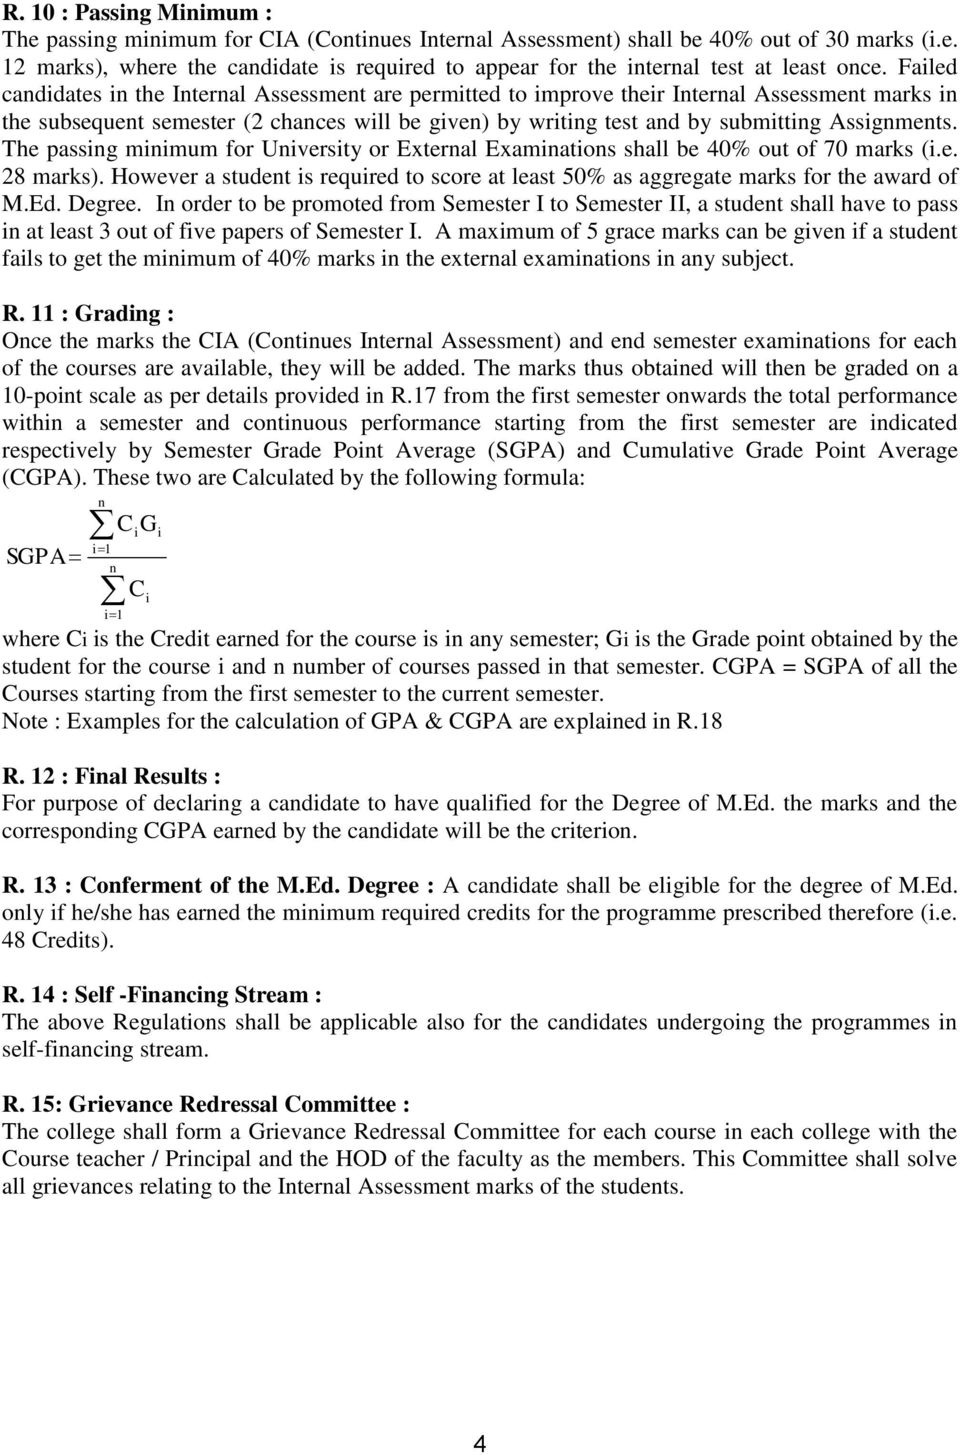 Scroll Down To Read : How To Calculate Gpa Per Semester By Charlotte Vale  Allen